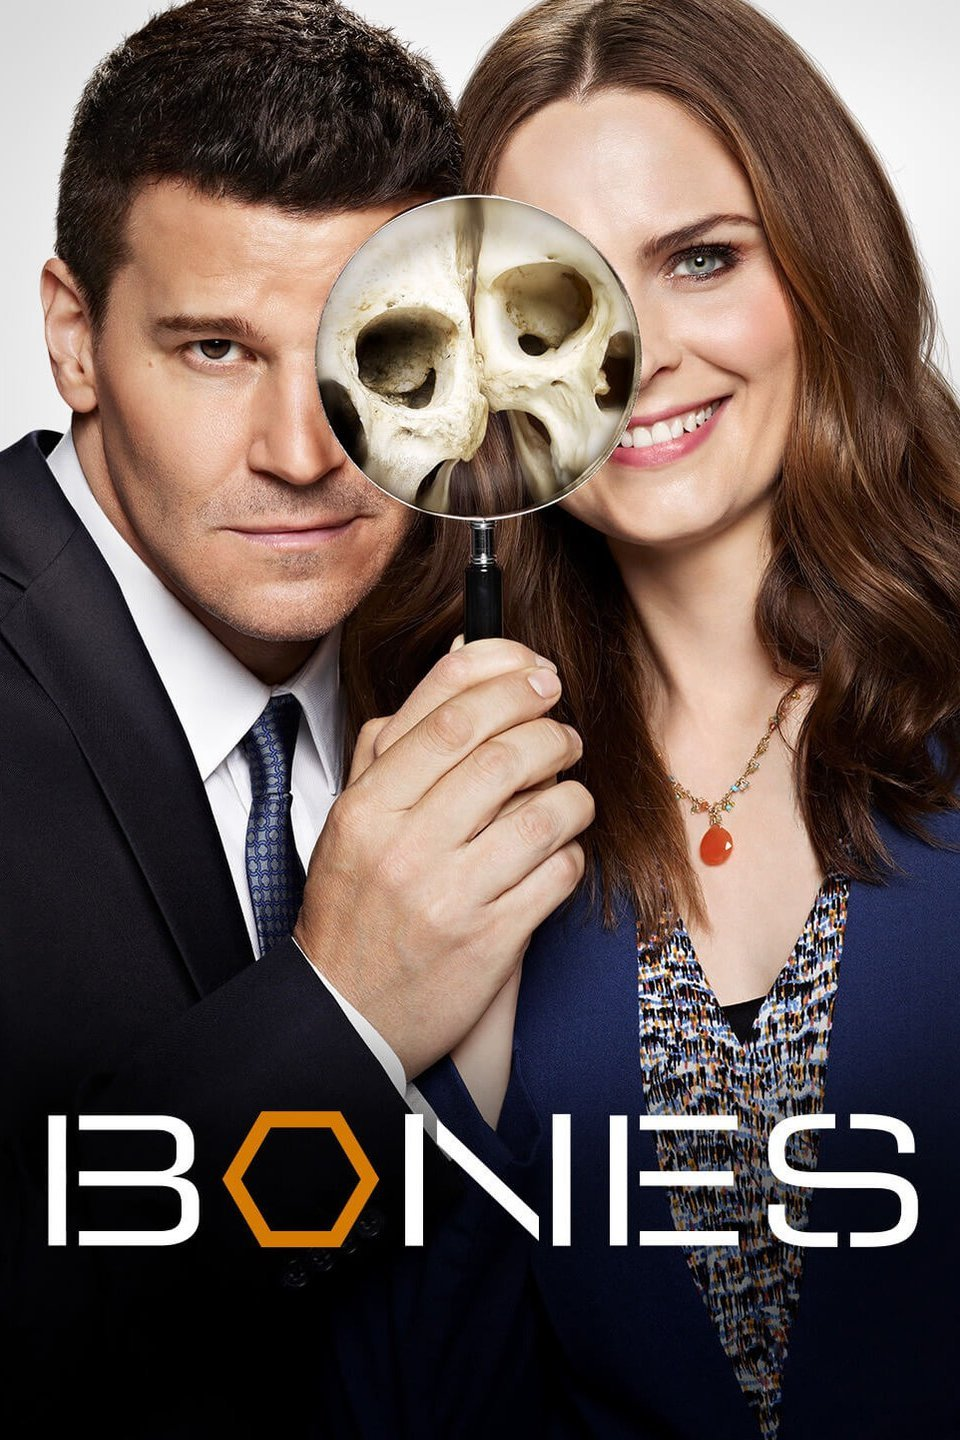 Image result for bones tv show